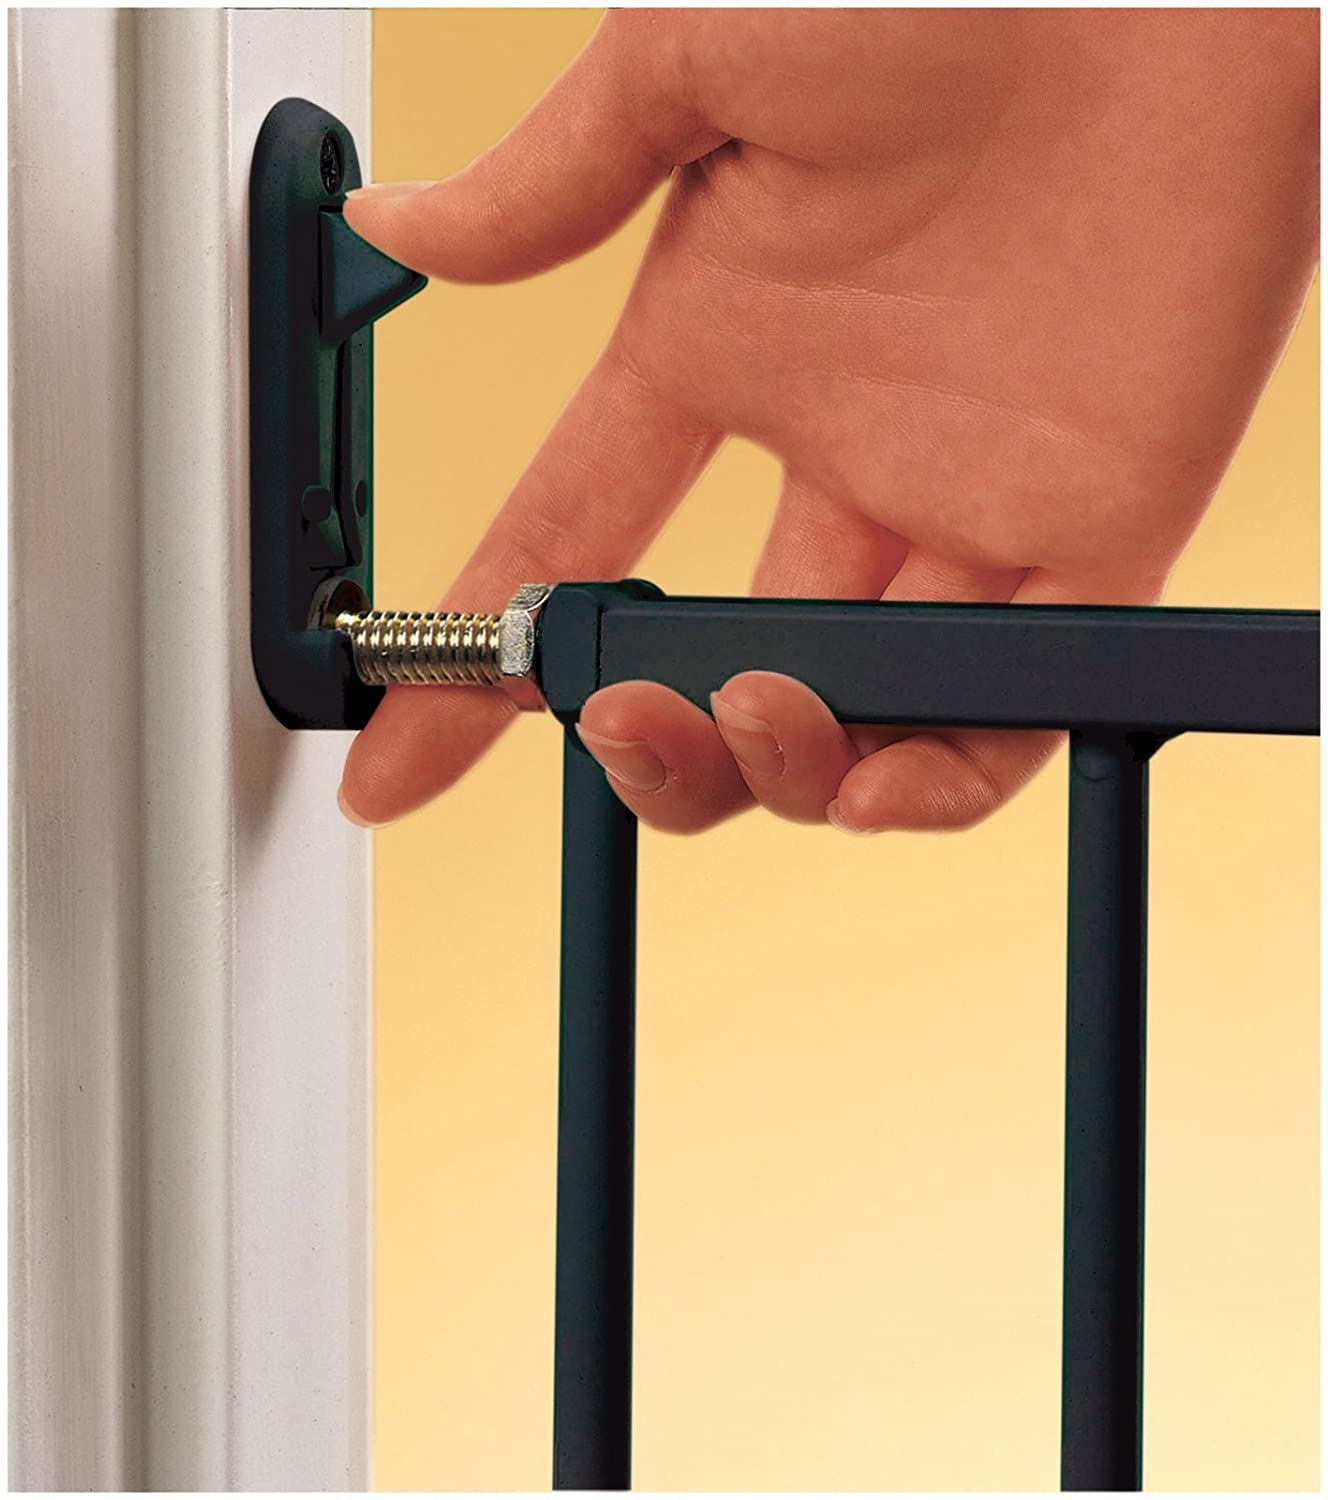 Amazon.com : Kidco Safeway Gate, Top of Stairs Gate, Black : Baby